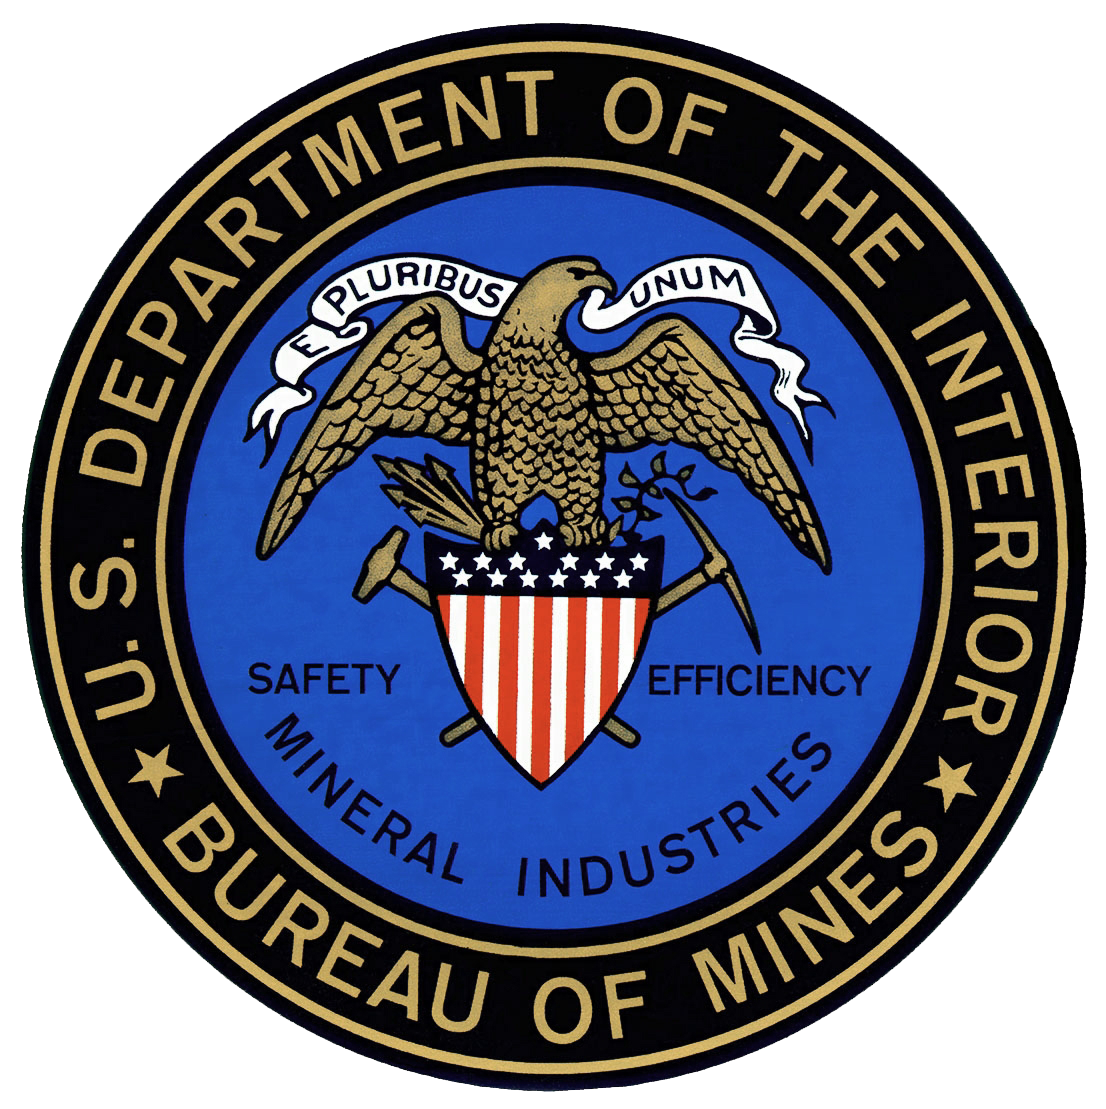 United states bureau of mines wikipedia for Bureau government